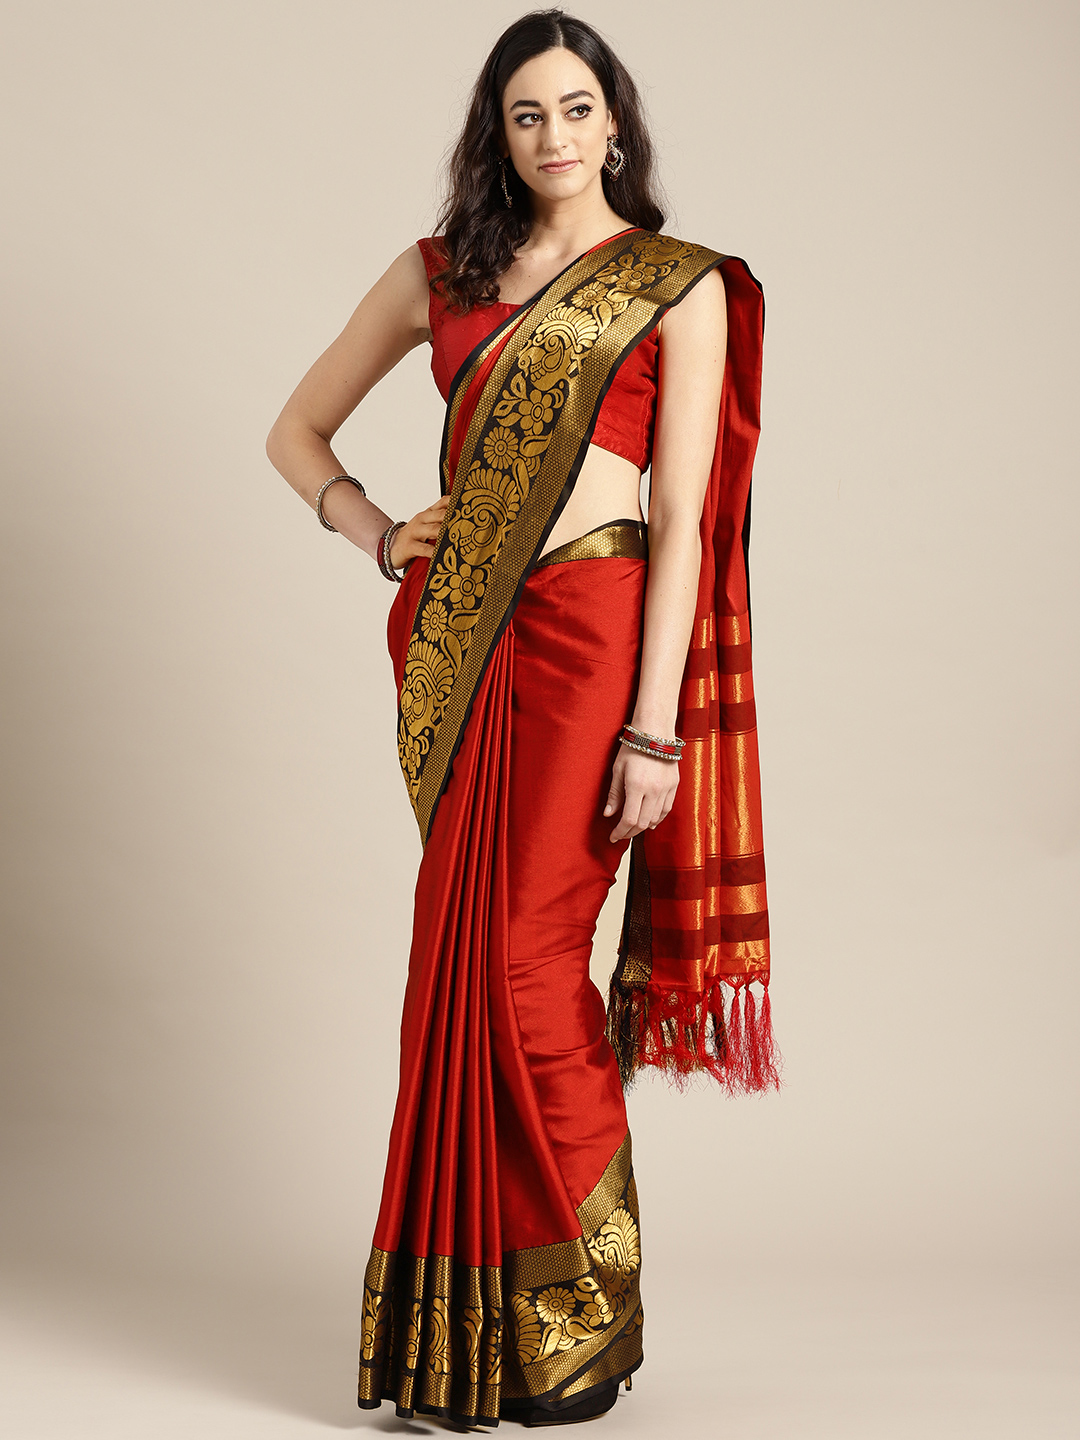 Rajesh Silk Mills Red & Black Solid Saree Price in India